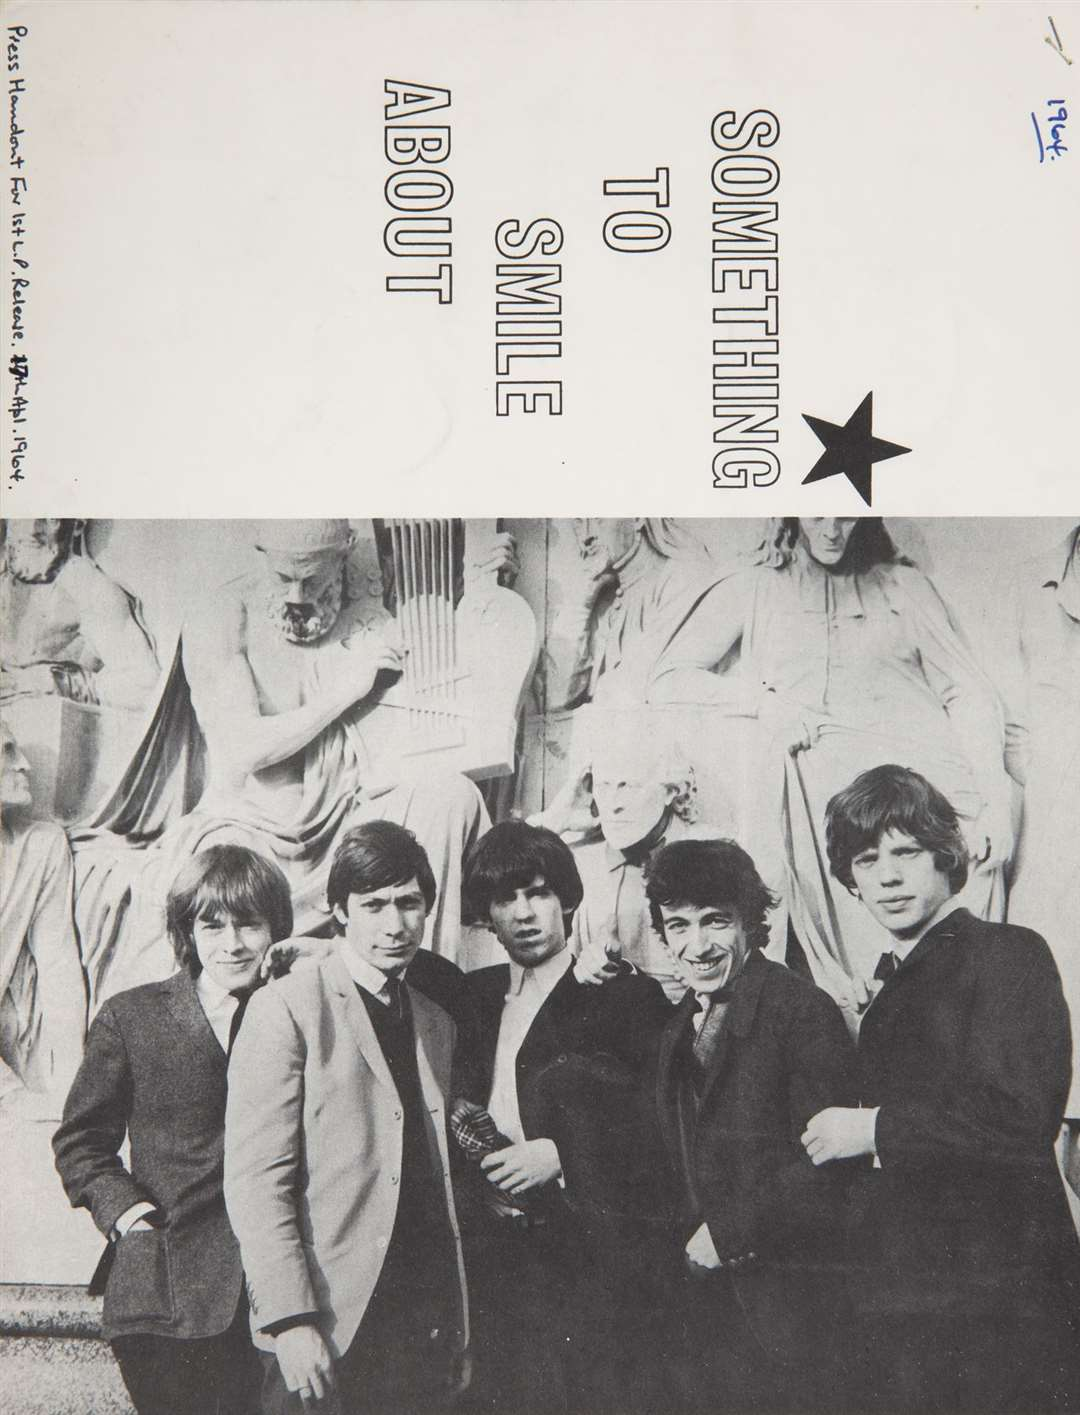 A press handout, 'Something to Smile About', from April 1964 with Rolling Stones founders Brian Jones, Charlie Watts, Keith Richards, Bill Wyman and Mick Jagger